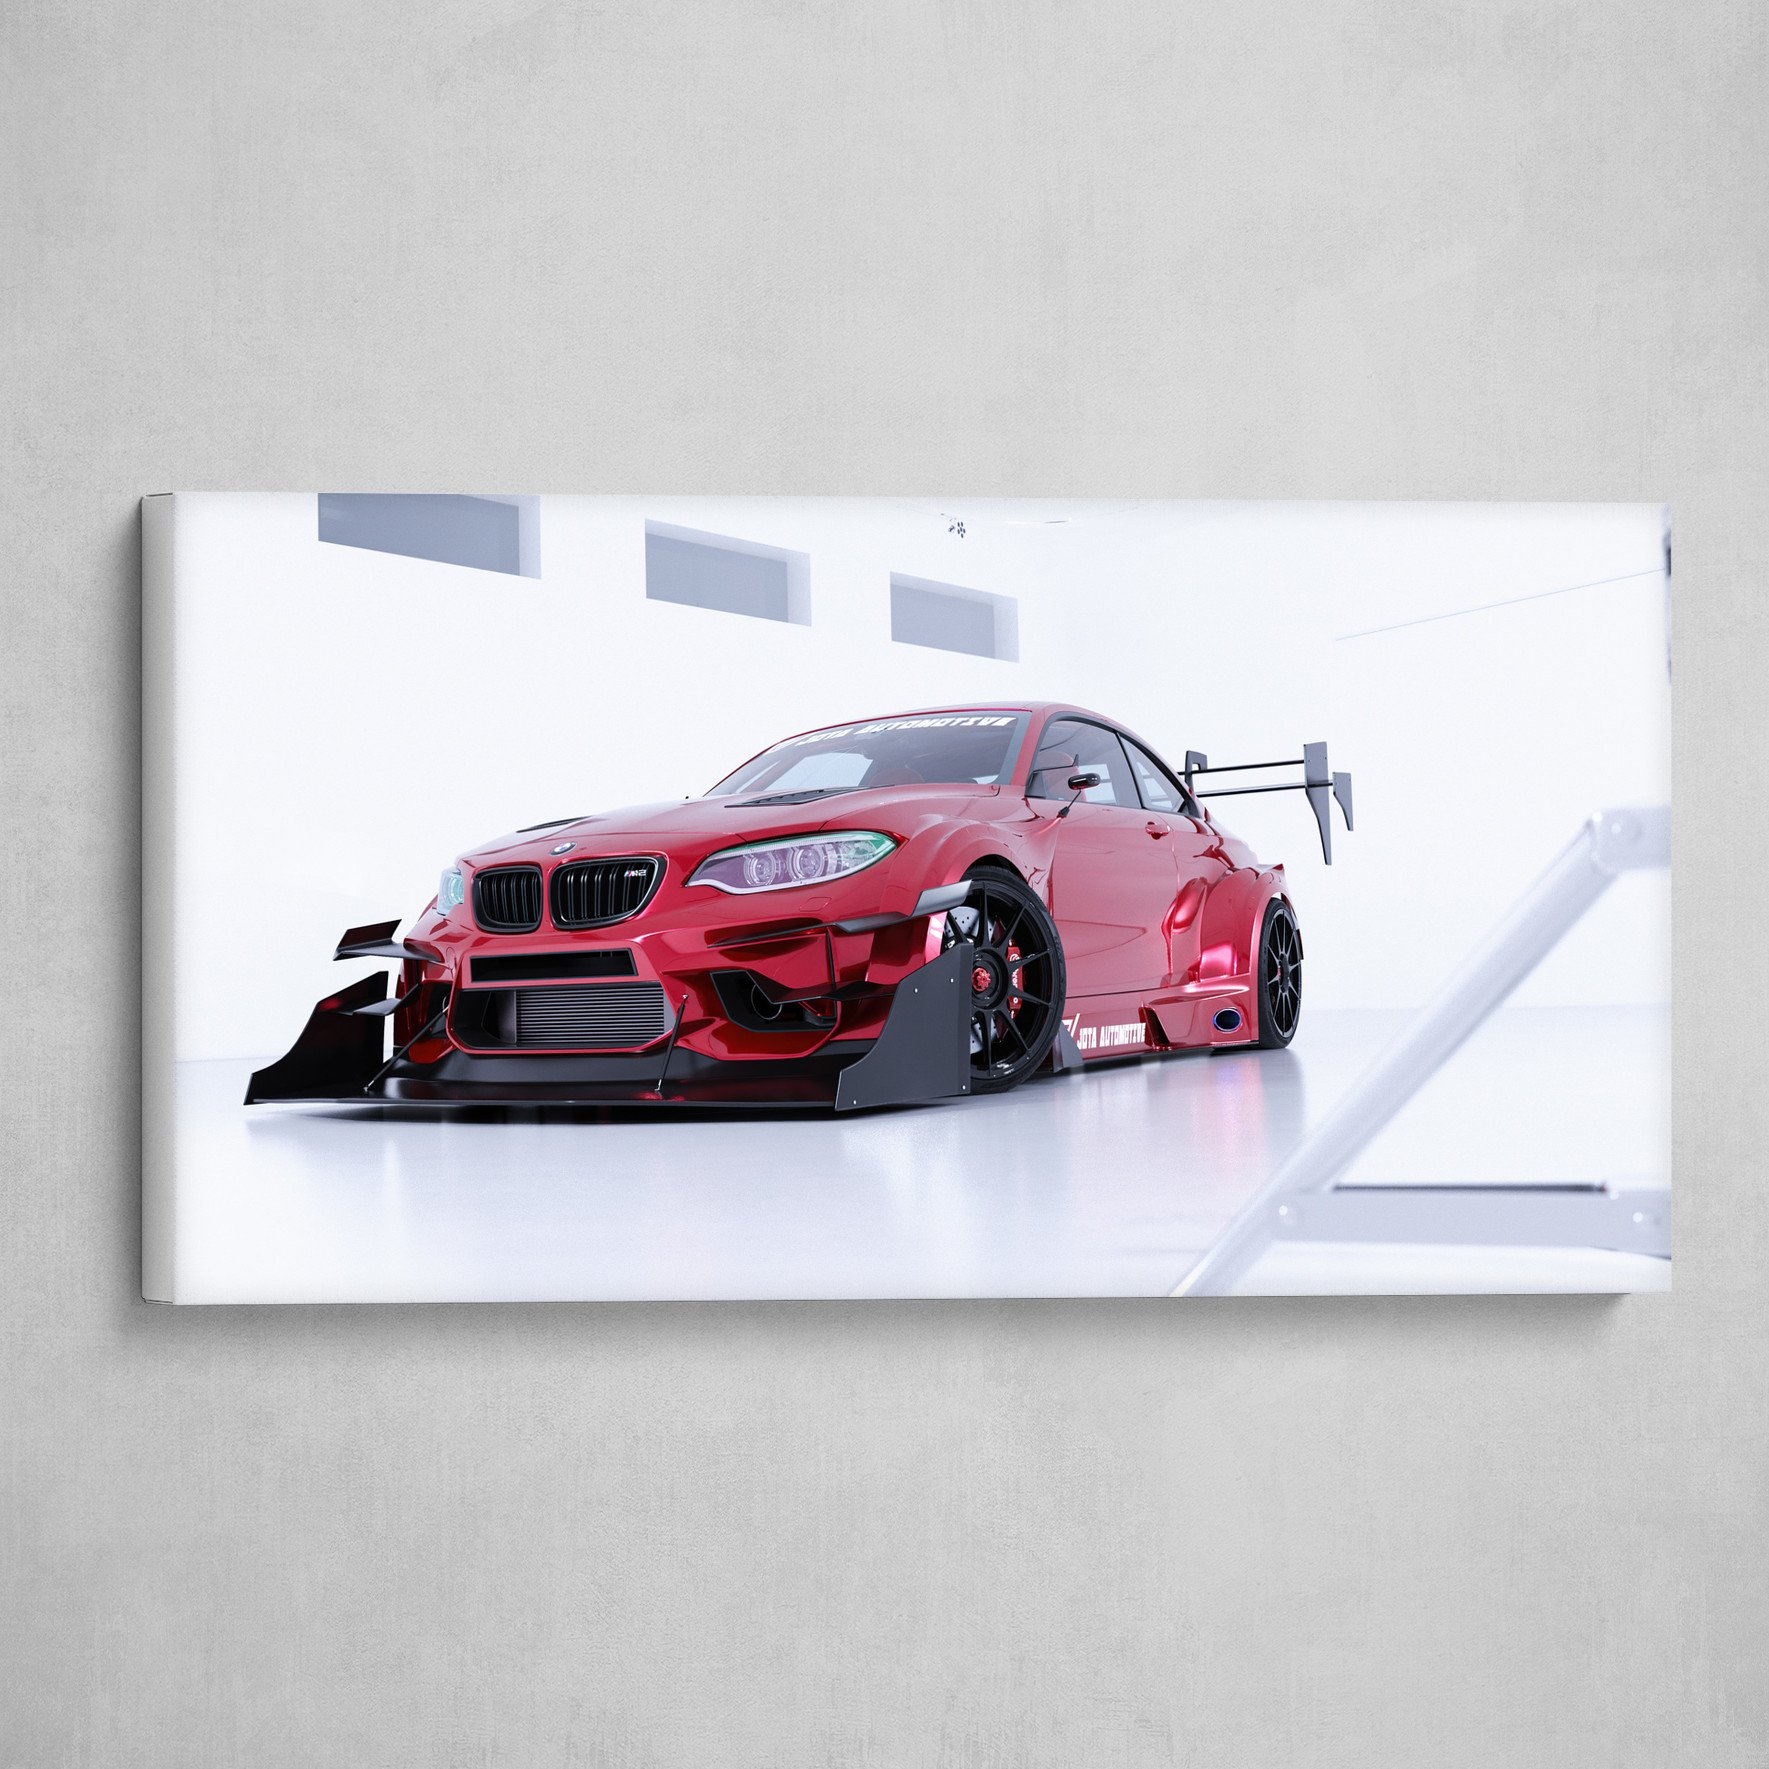 BMW M2 Time Attack front